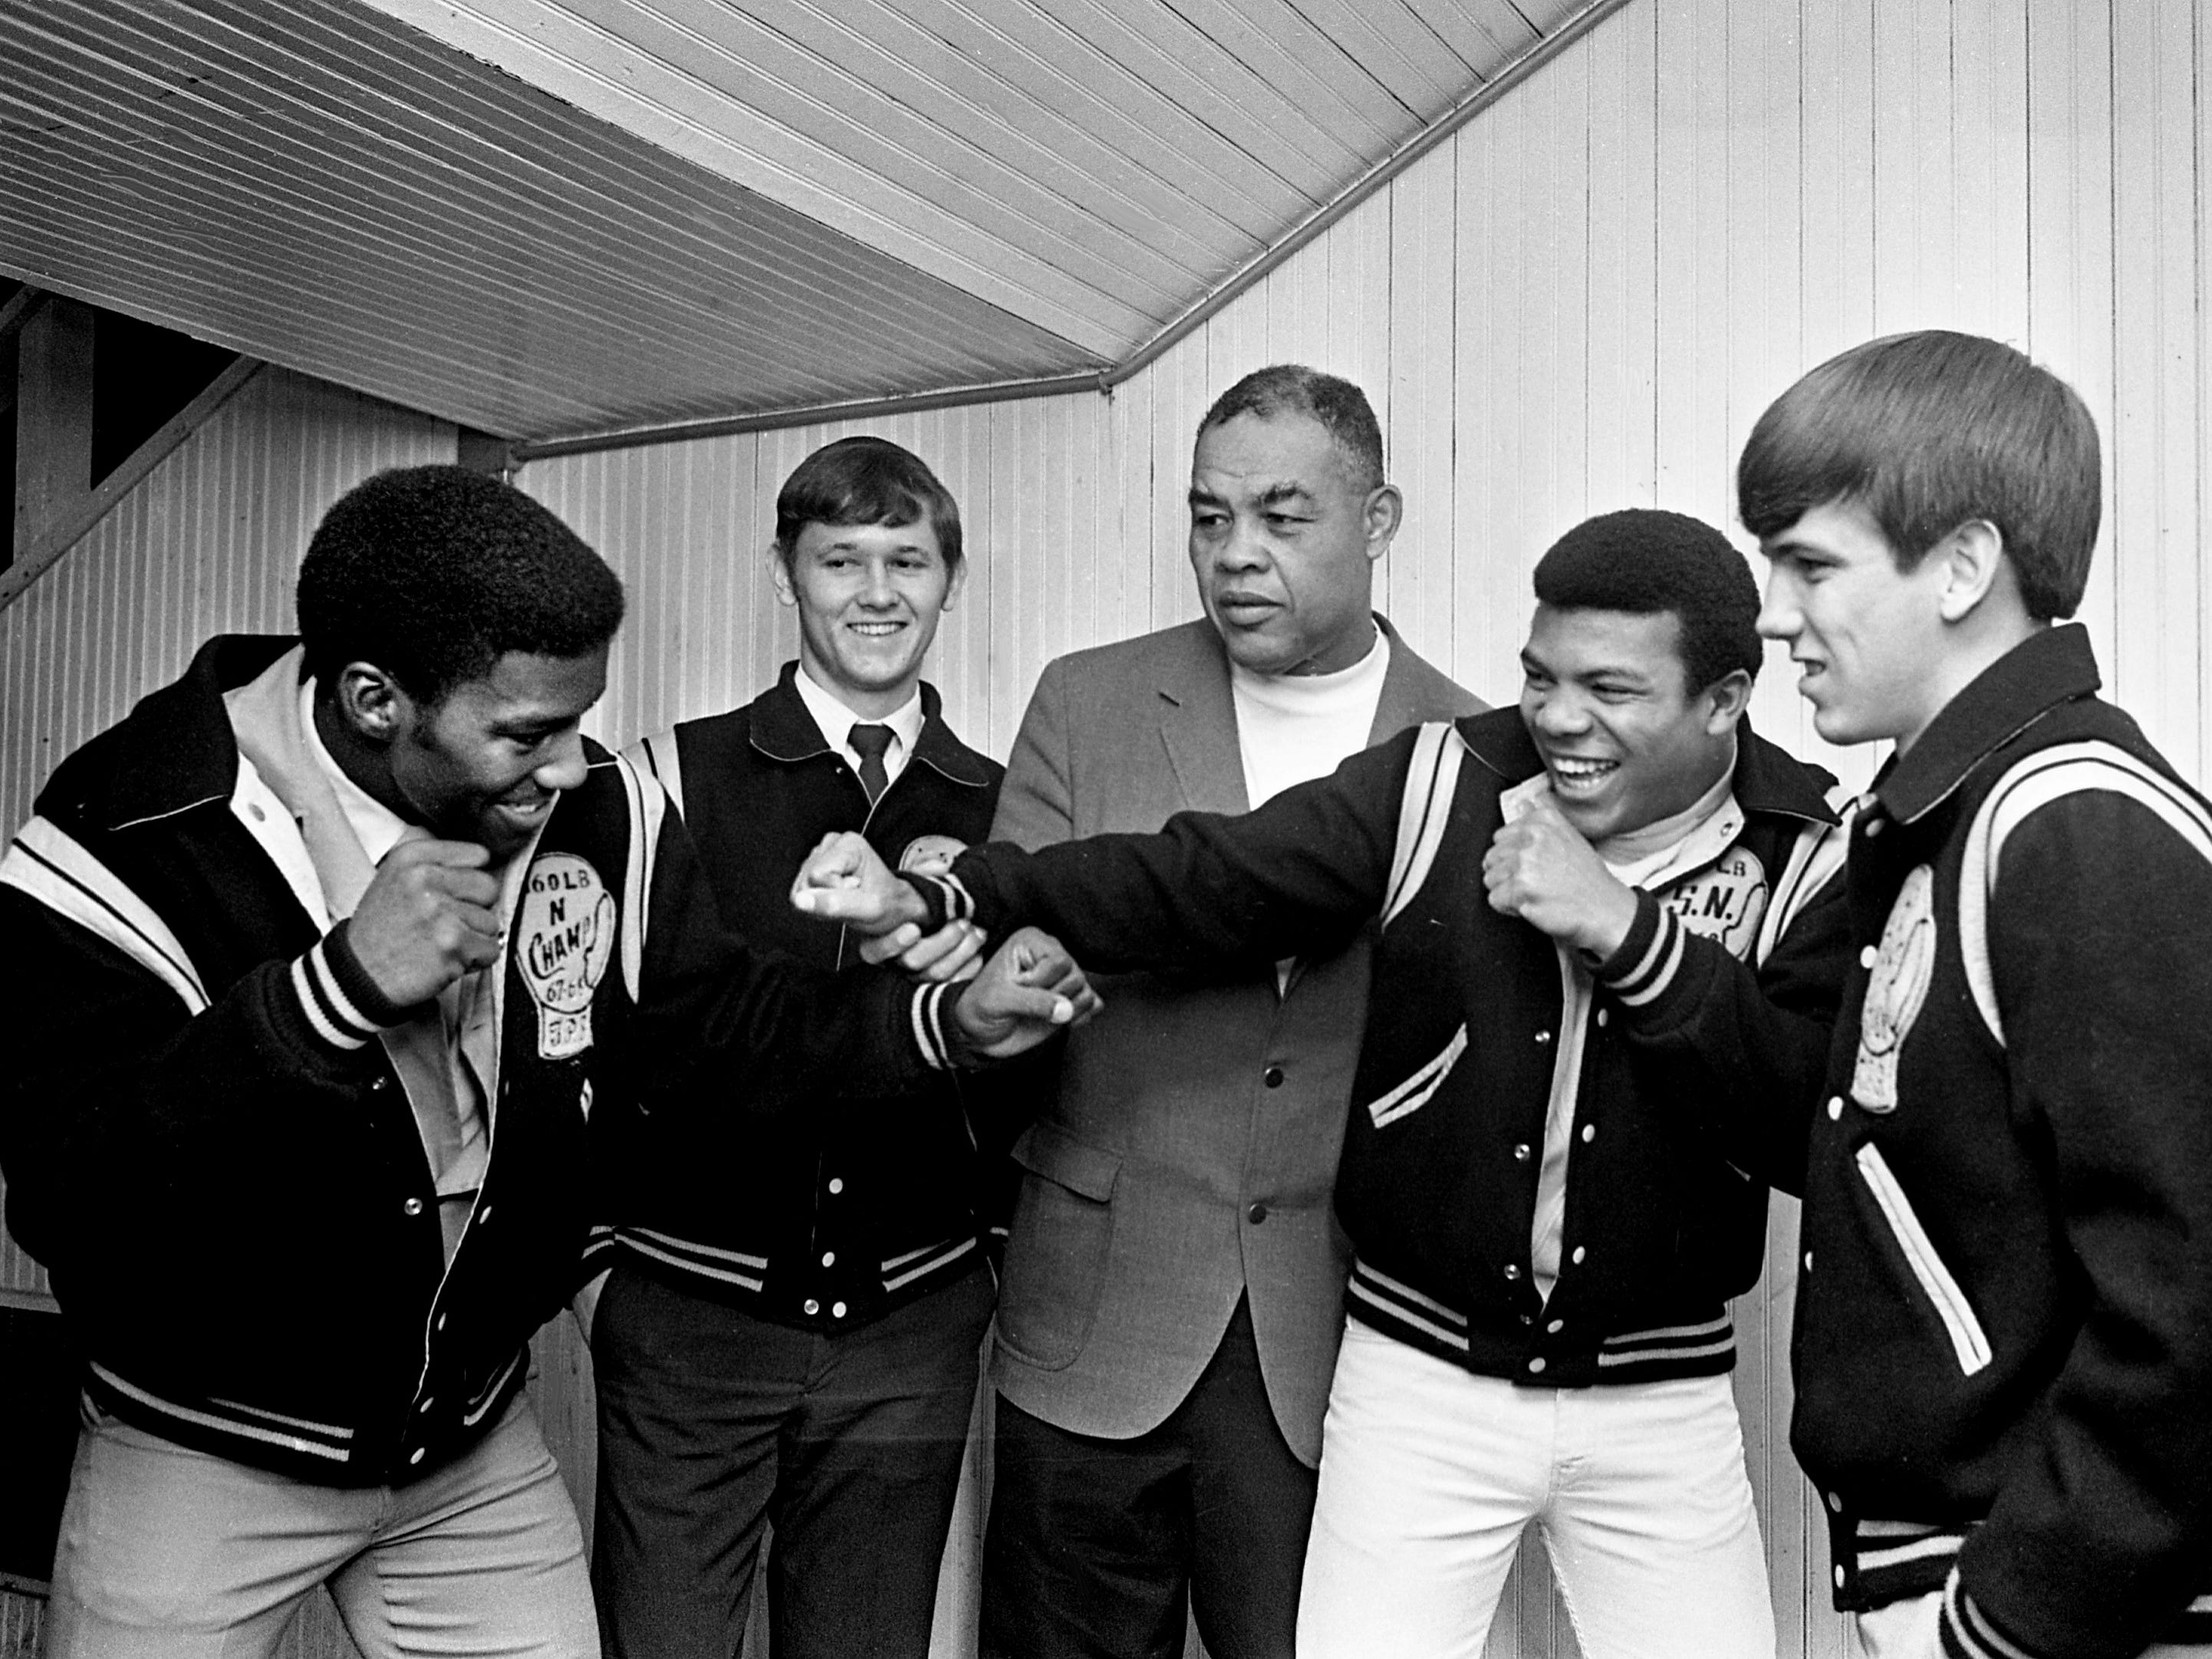 Former heavyweight champion Joe Louis, center, shares a moment with TPS boxers John Powell, left, Joel Grissom, Jimmy Sweatford and Tommy Cox at the Fairgrounds Coliseum on Dec. 4, 1968. Louis was in town to referee the wrestling matches at the Coliseum that night.